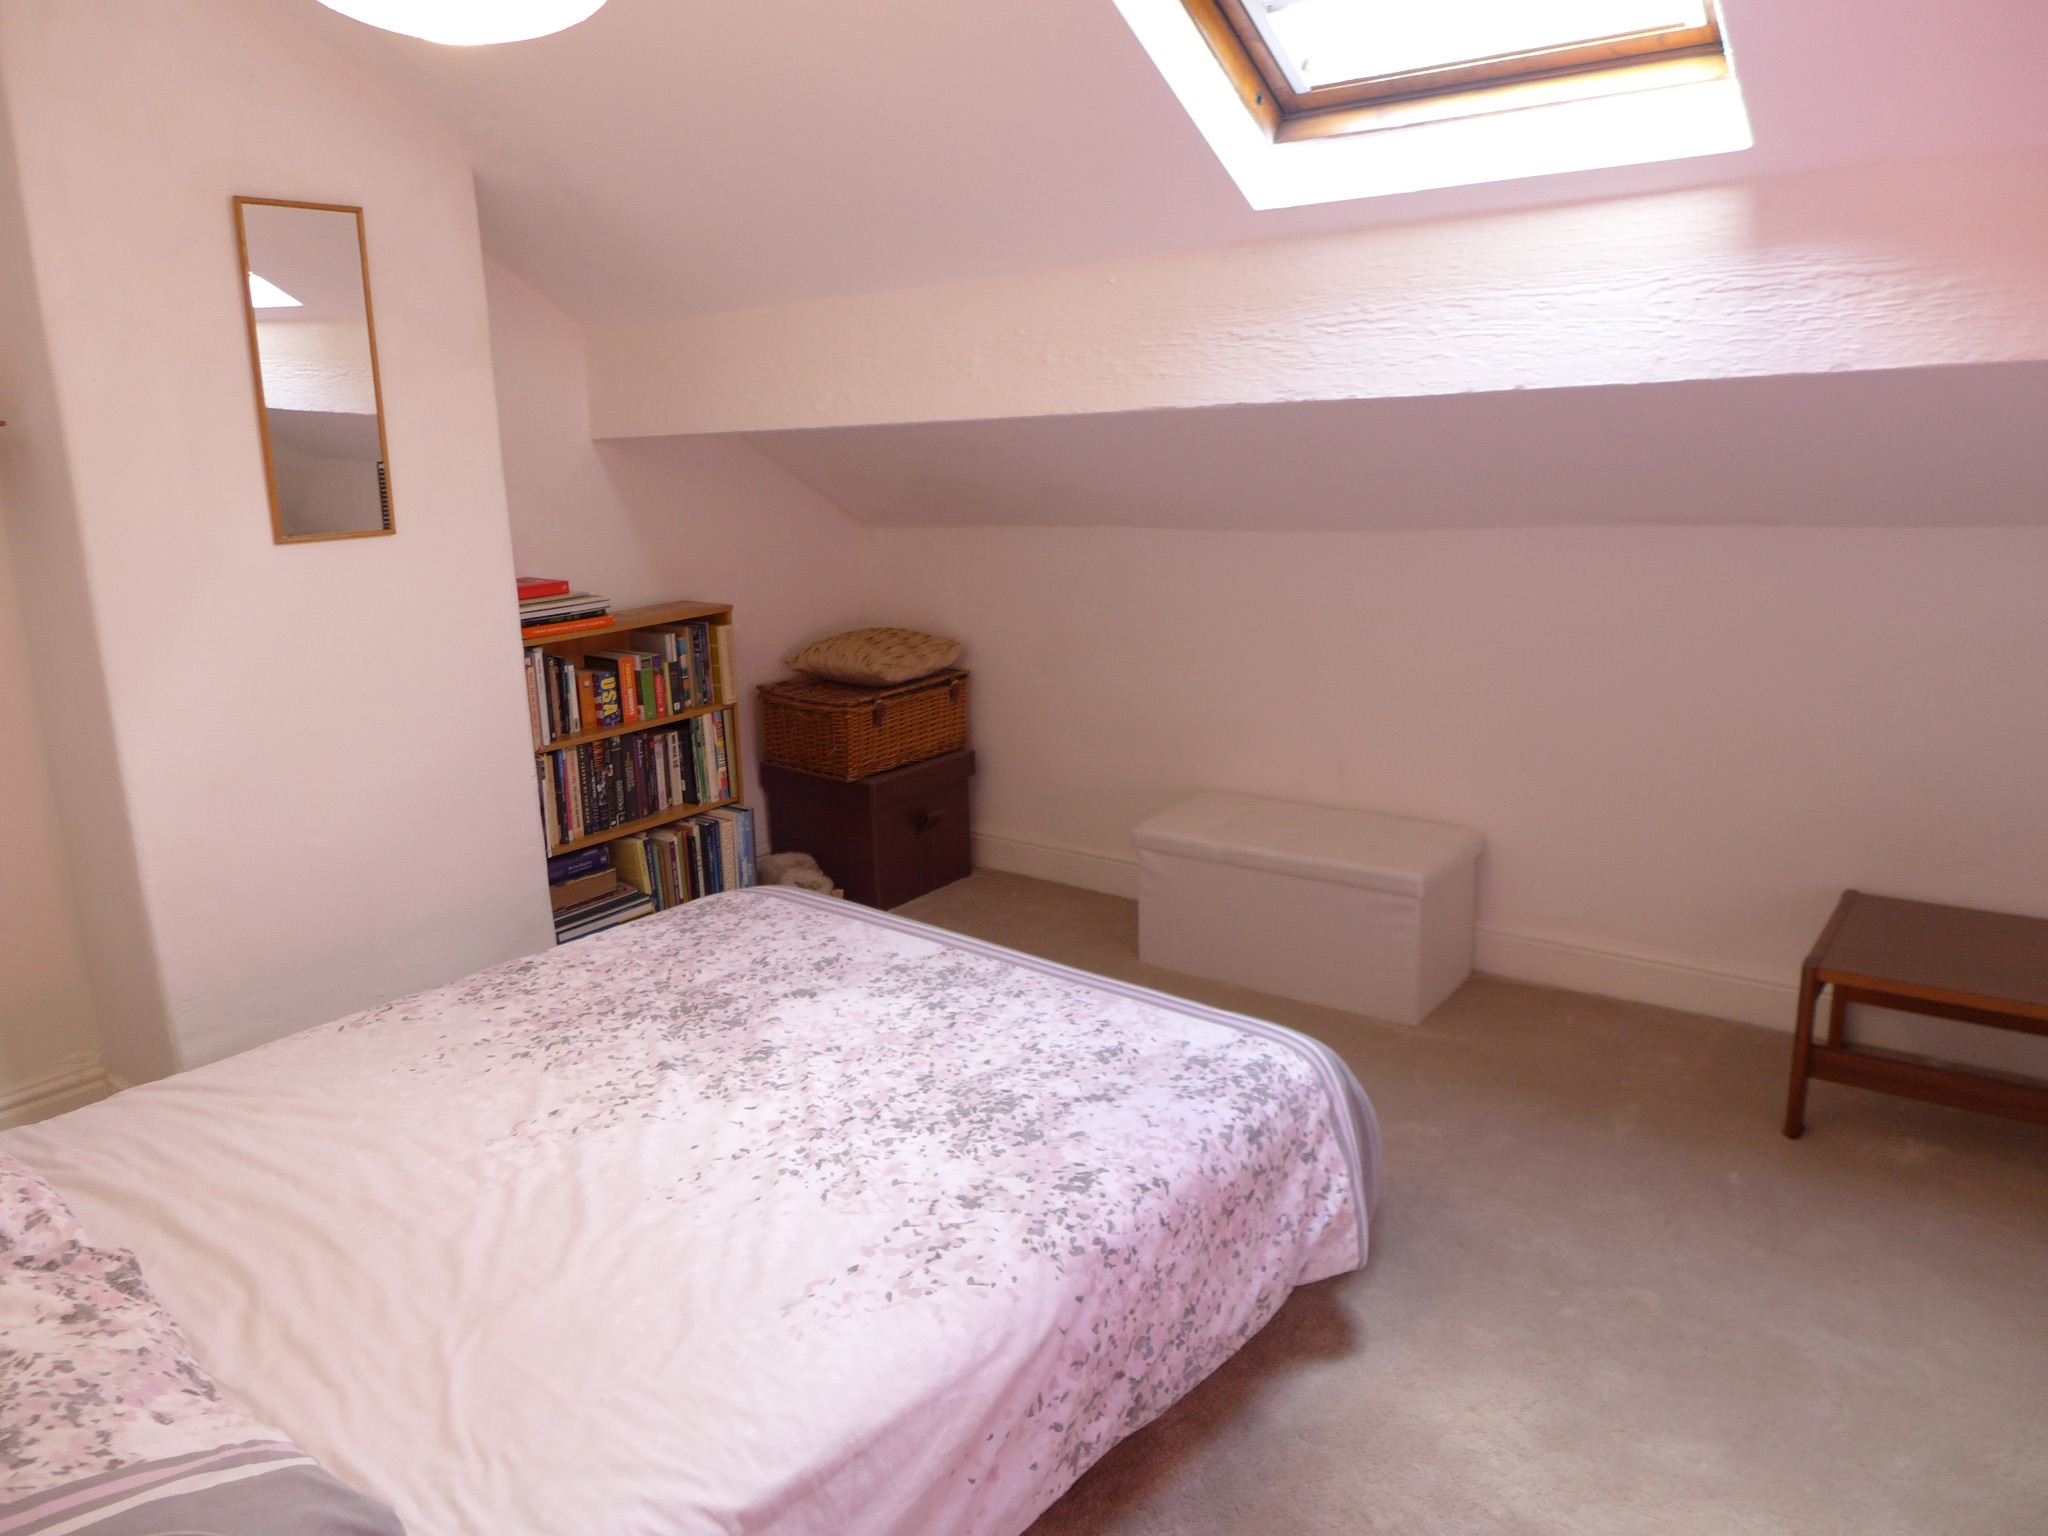 3 bedroom mid terraced house For Sale in Todmorden - Photograph 13.